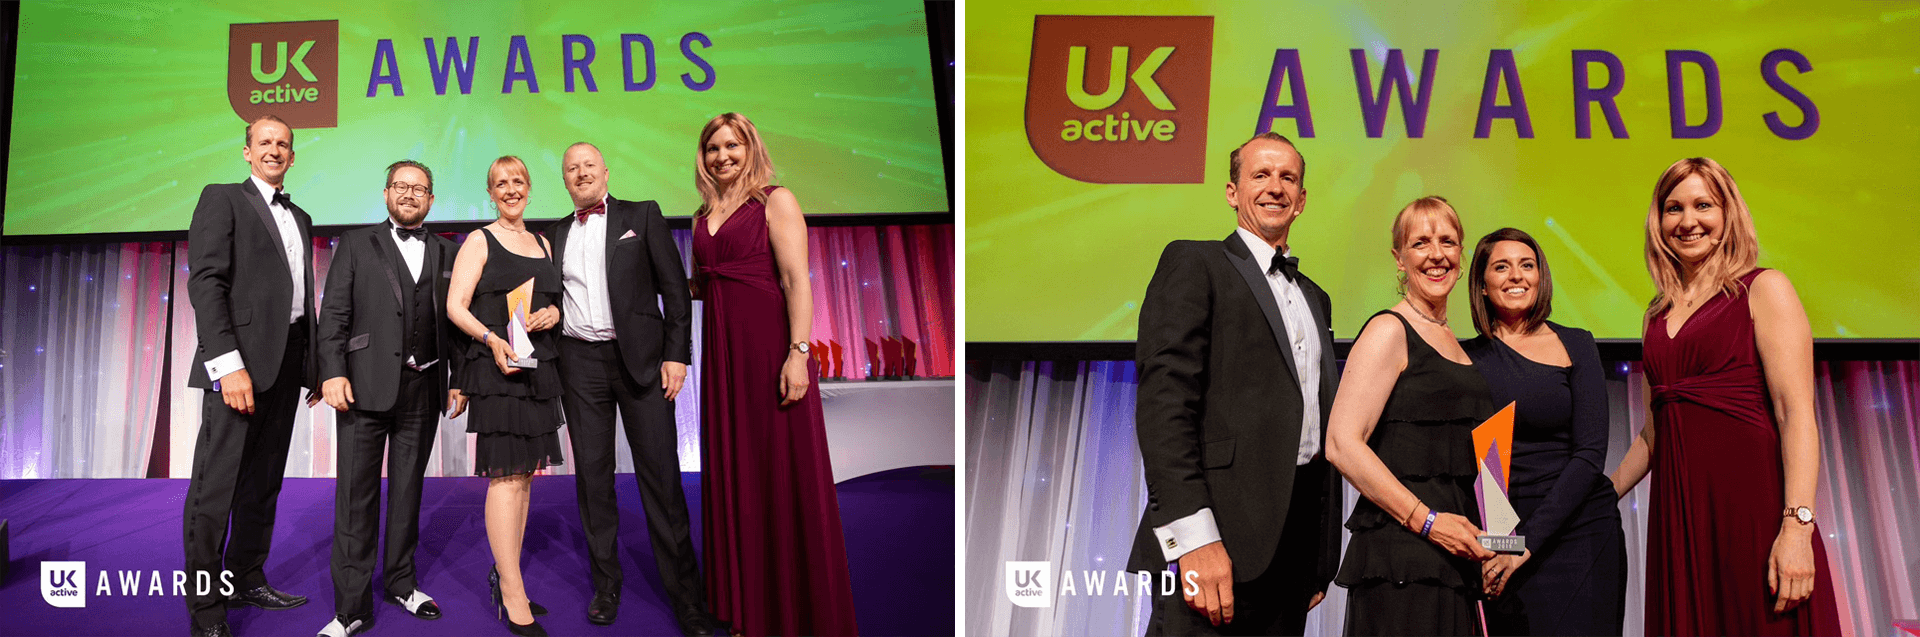 UK Active Awards